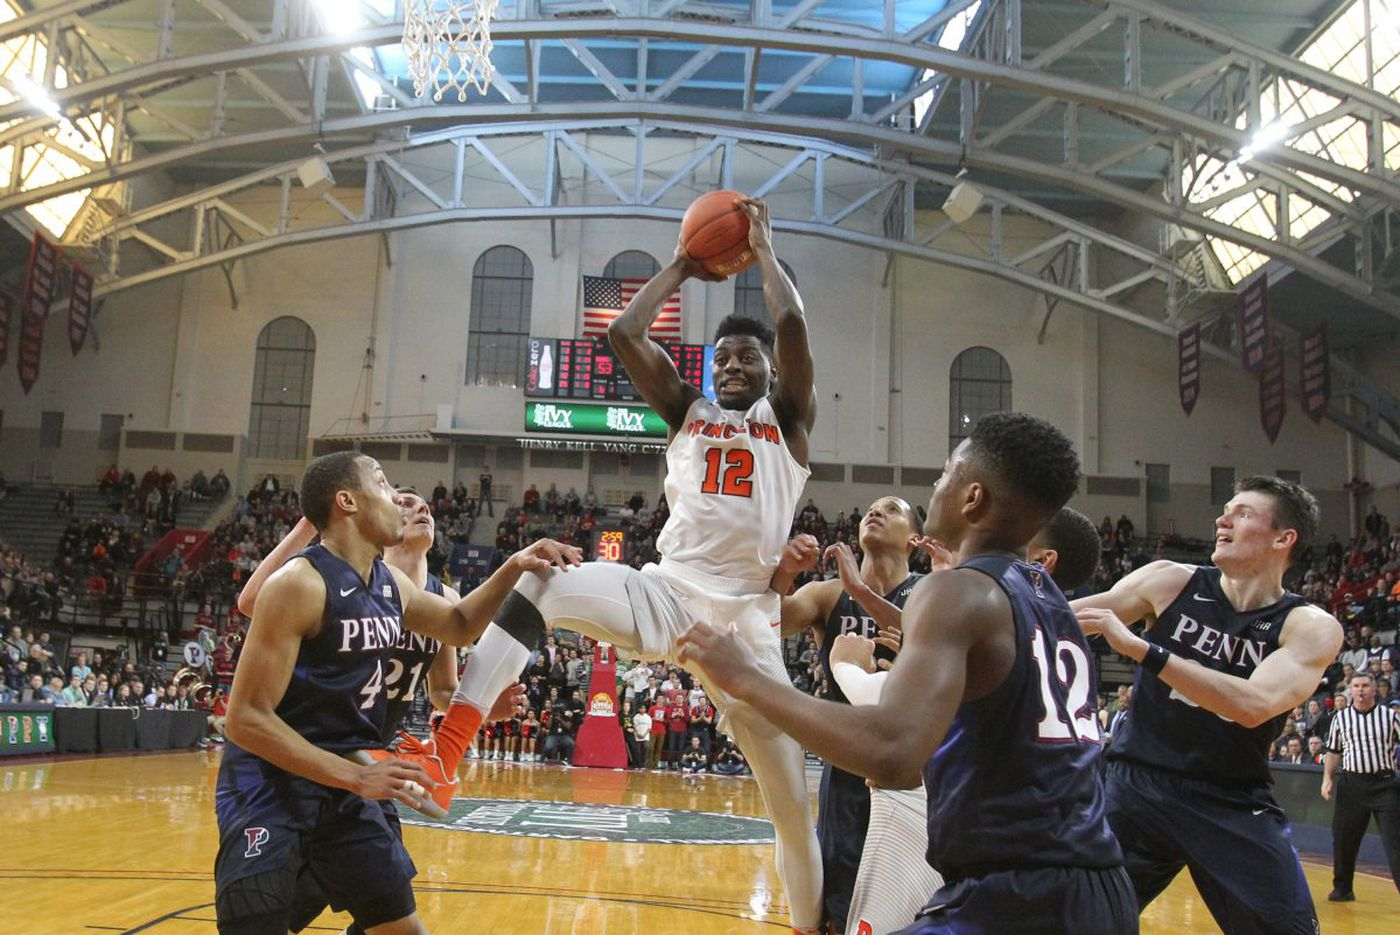 Penn-Princeton basketball game postponed to Saturday